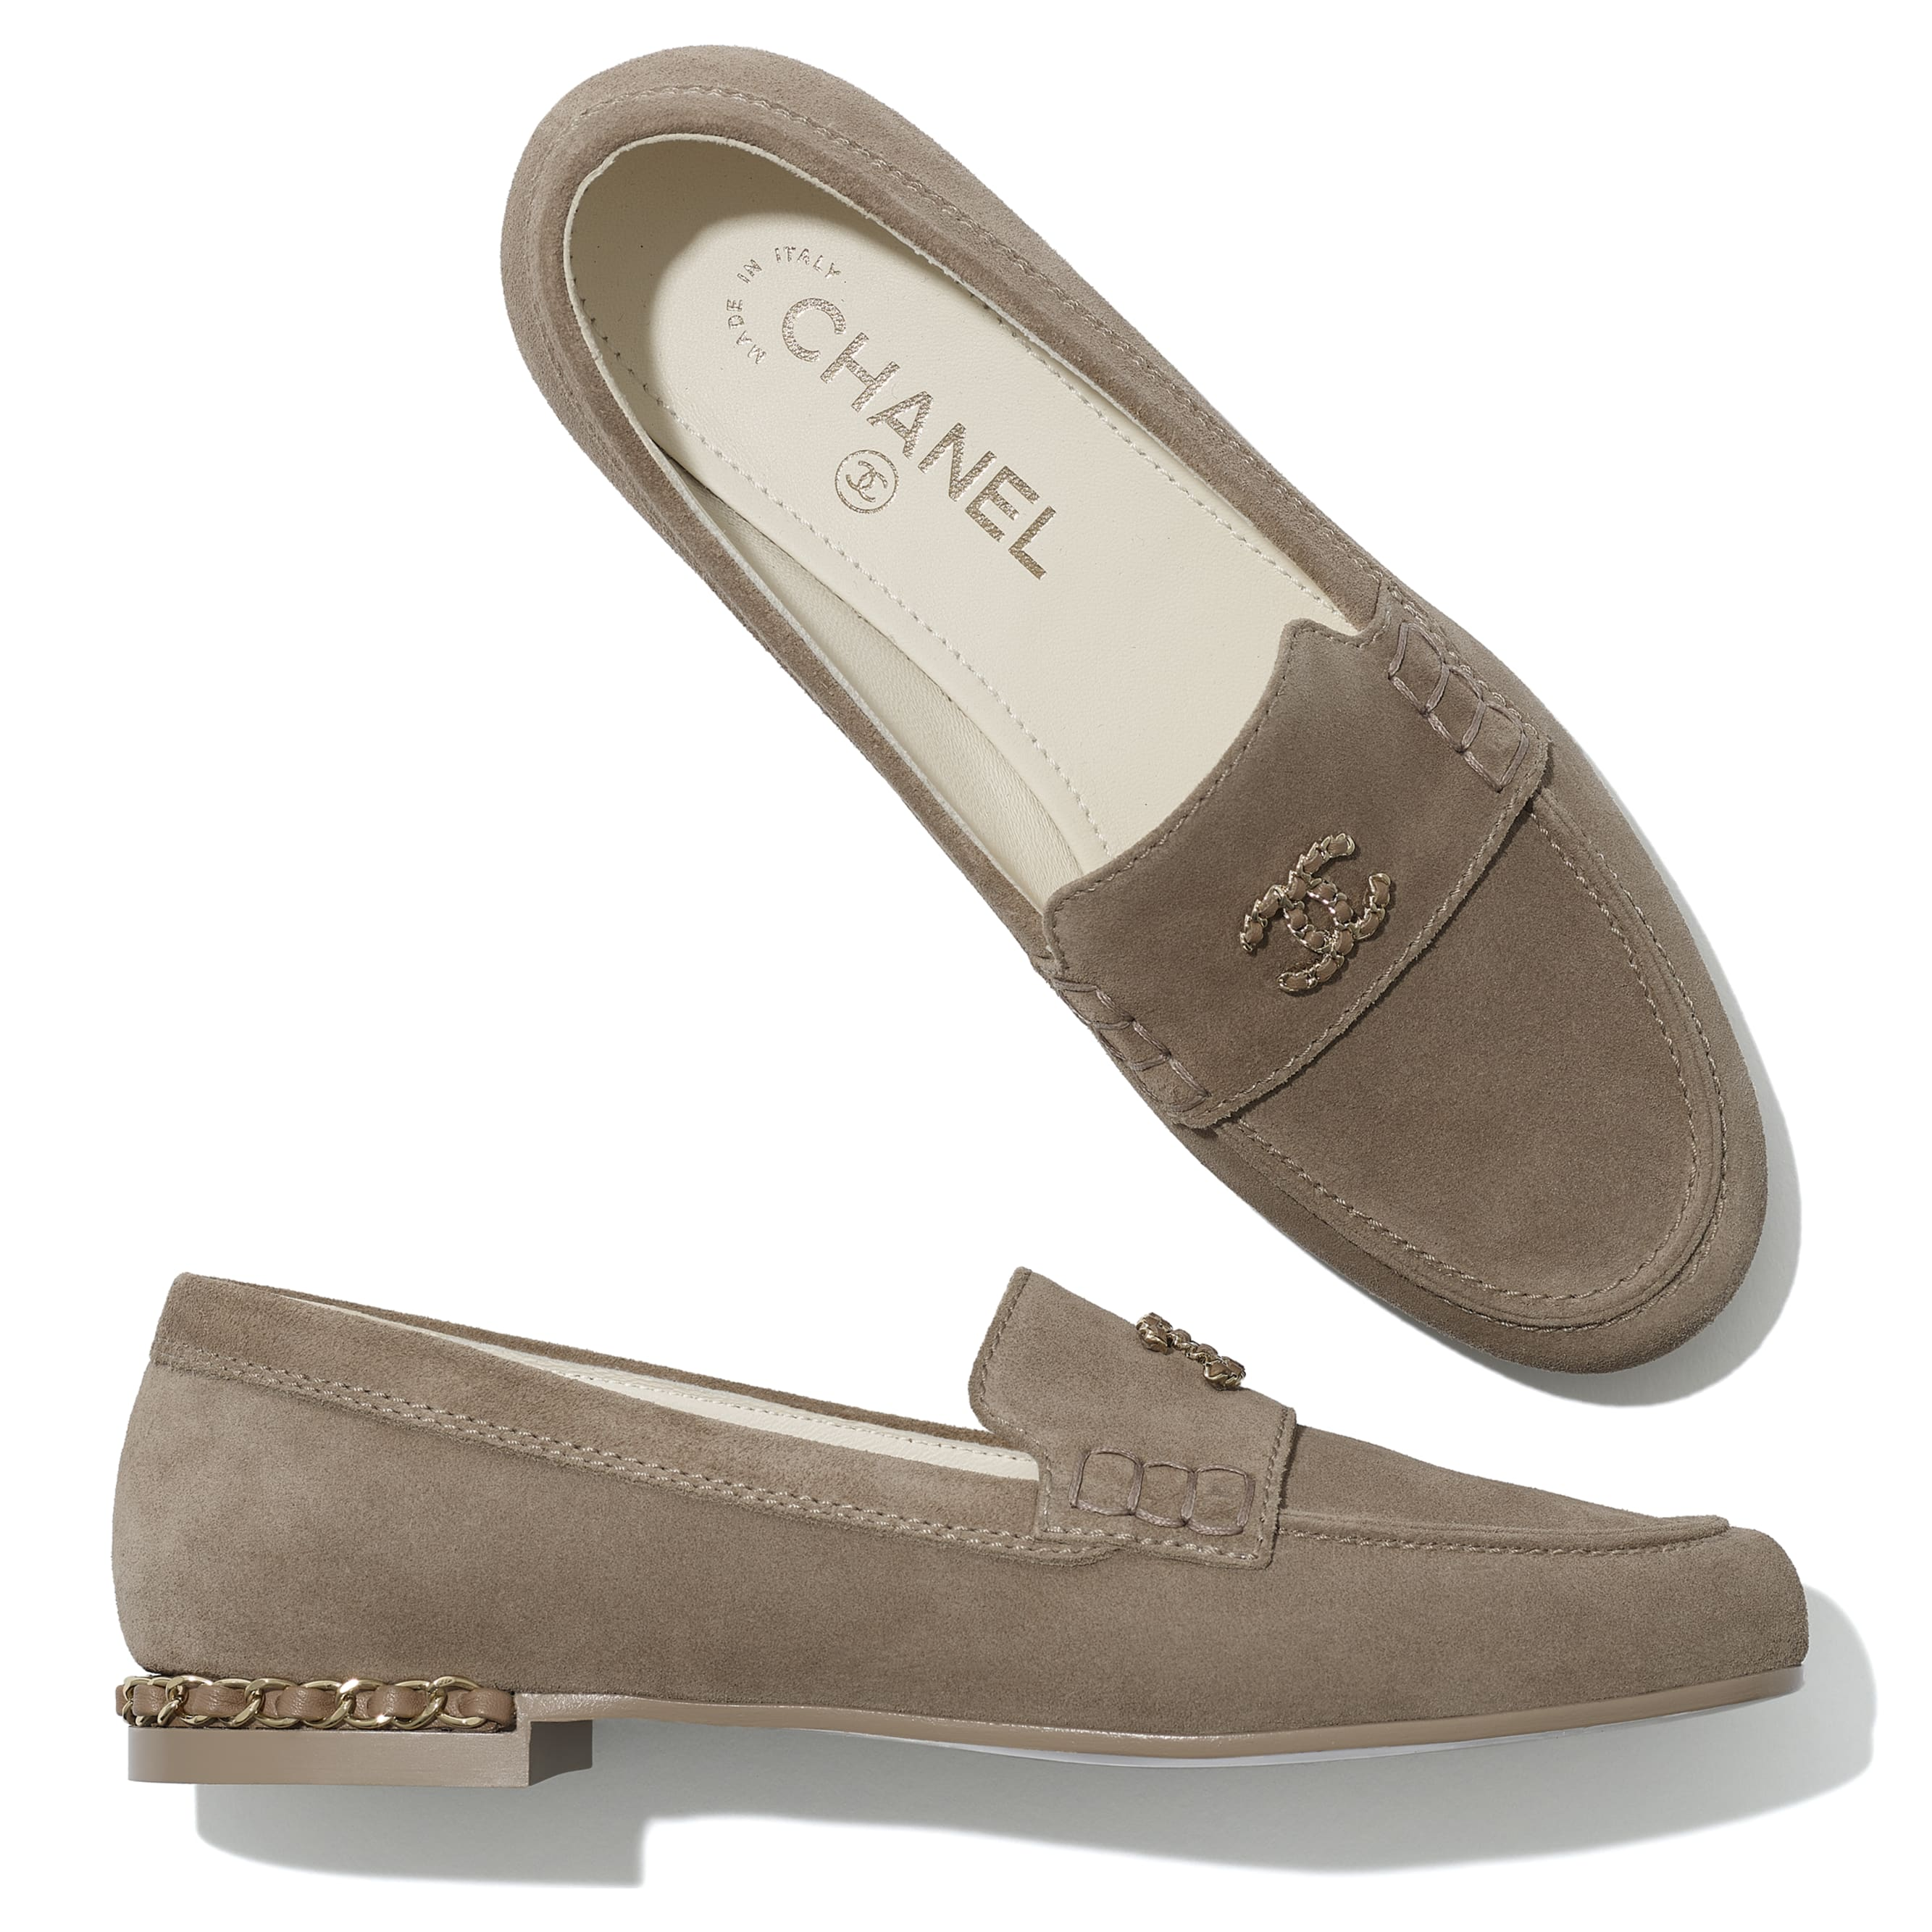 Loafers - Dark Beige - Suede Calfskin - CHANEL - Extra view - see standard sized version